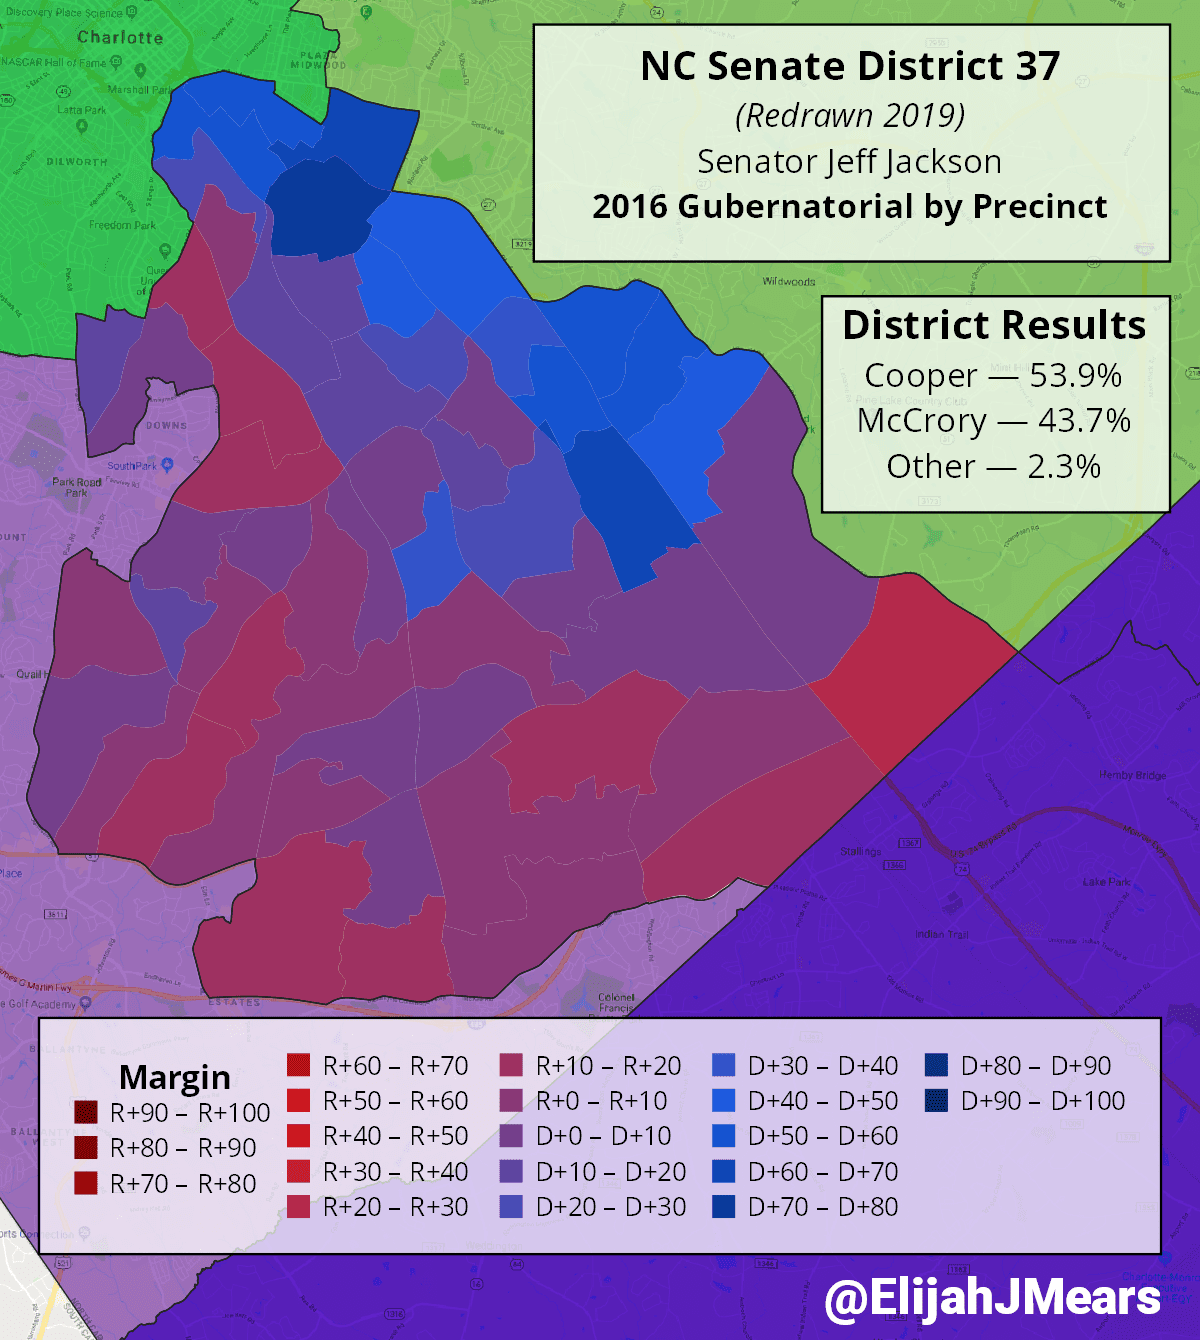 Precinct results in new Senate District 37 for the 2016 Gubernatorial election